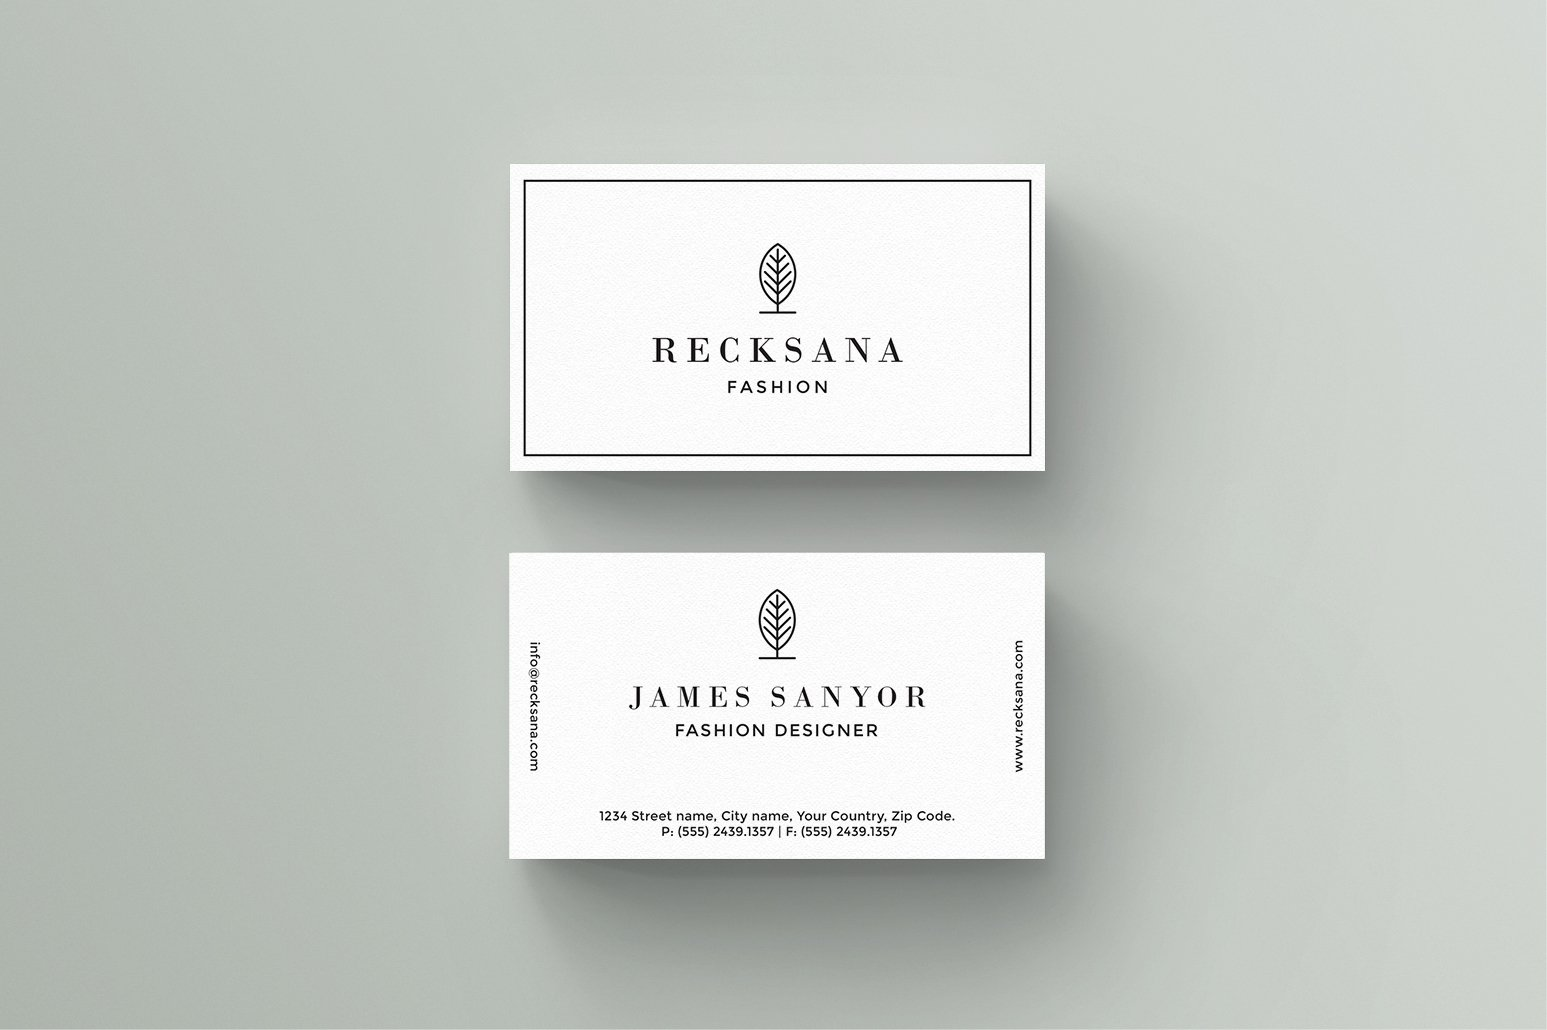 Business card kelsey business card templates creative market recksana business card template flashek Gallery